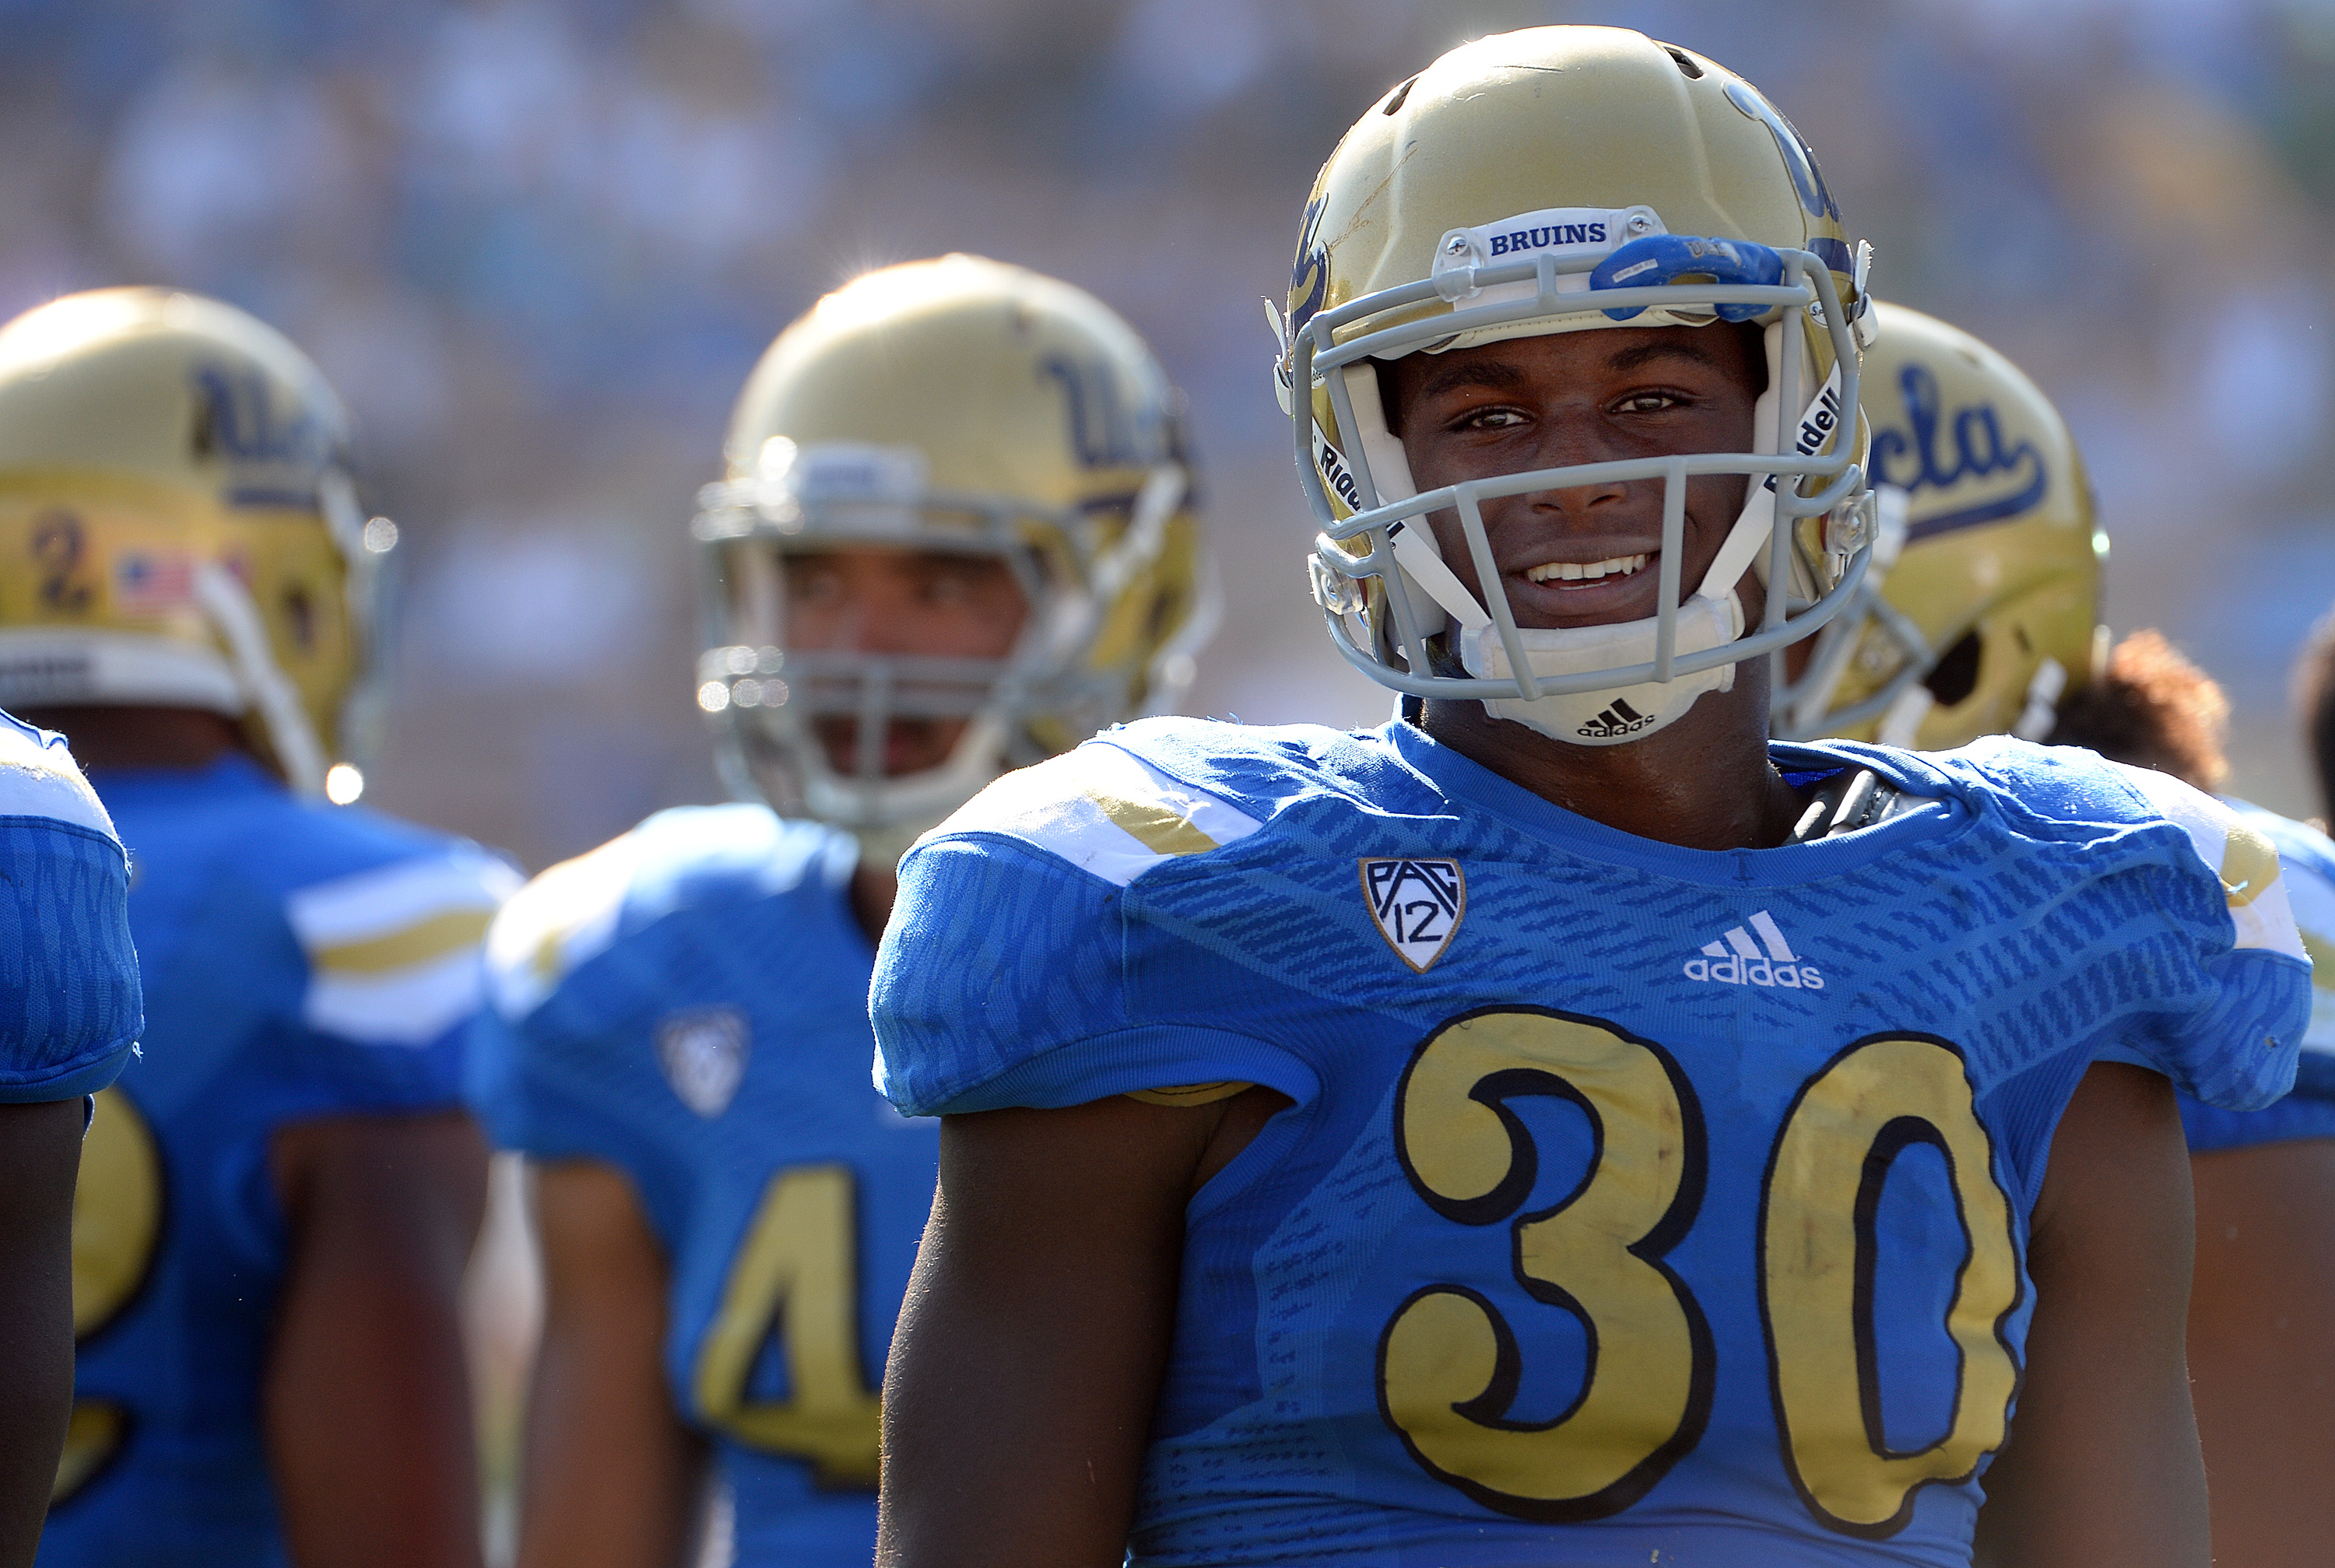 UCLA linebacker Myles Jack is the only Bruin picked by the Sporting News as a preseason All-American. He is pictured here during UCLA's 42-30 loss to Oregon on Oct. 11, 2014. (Keith Birmingham/Staff)